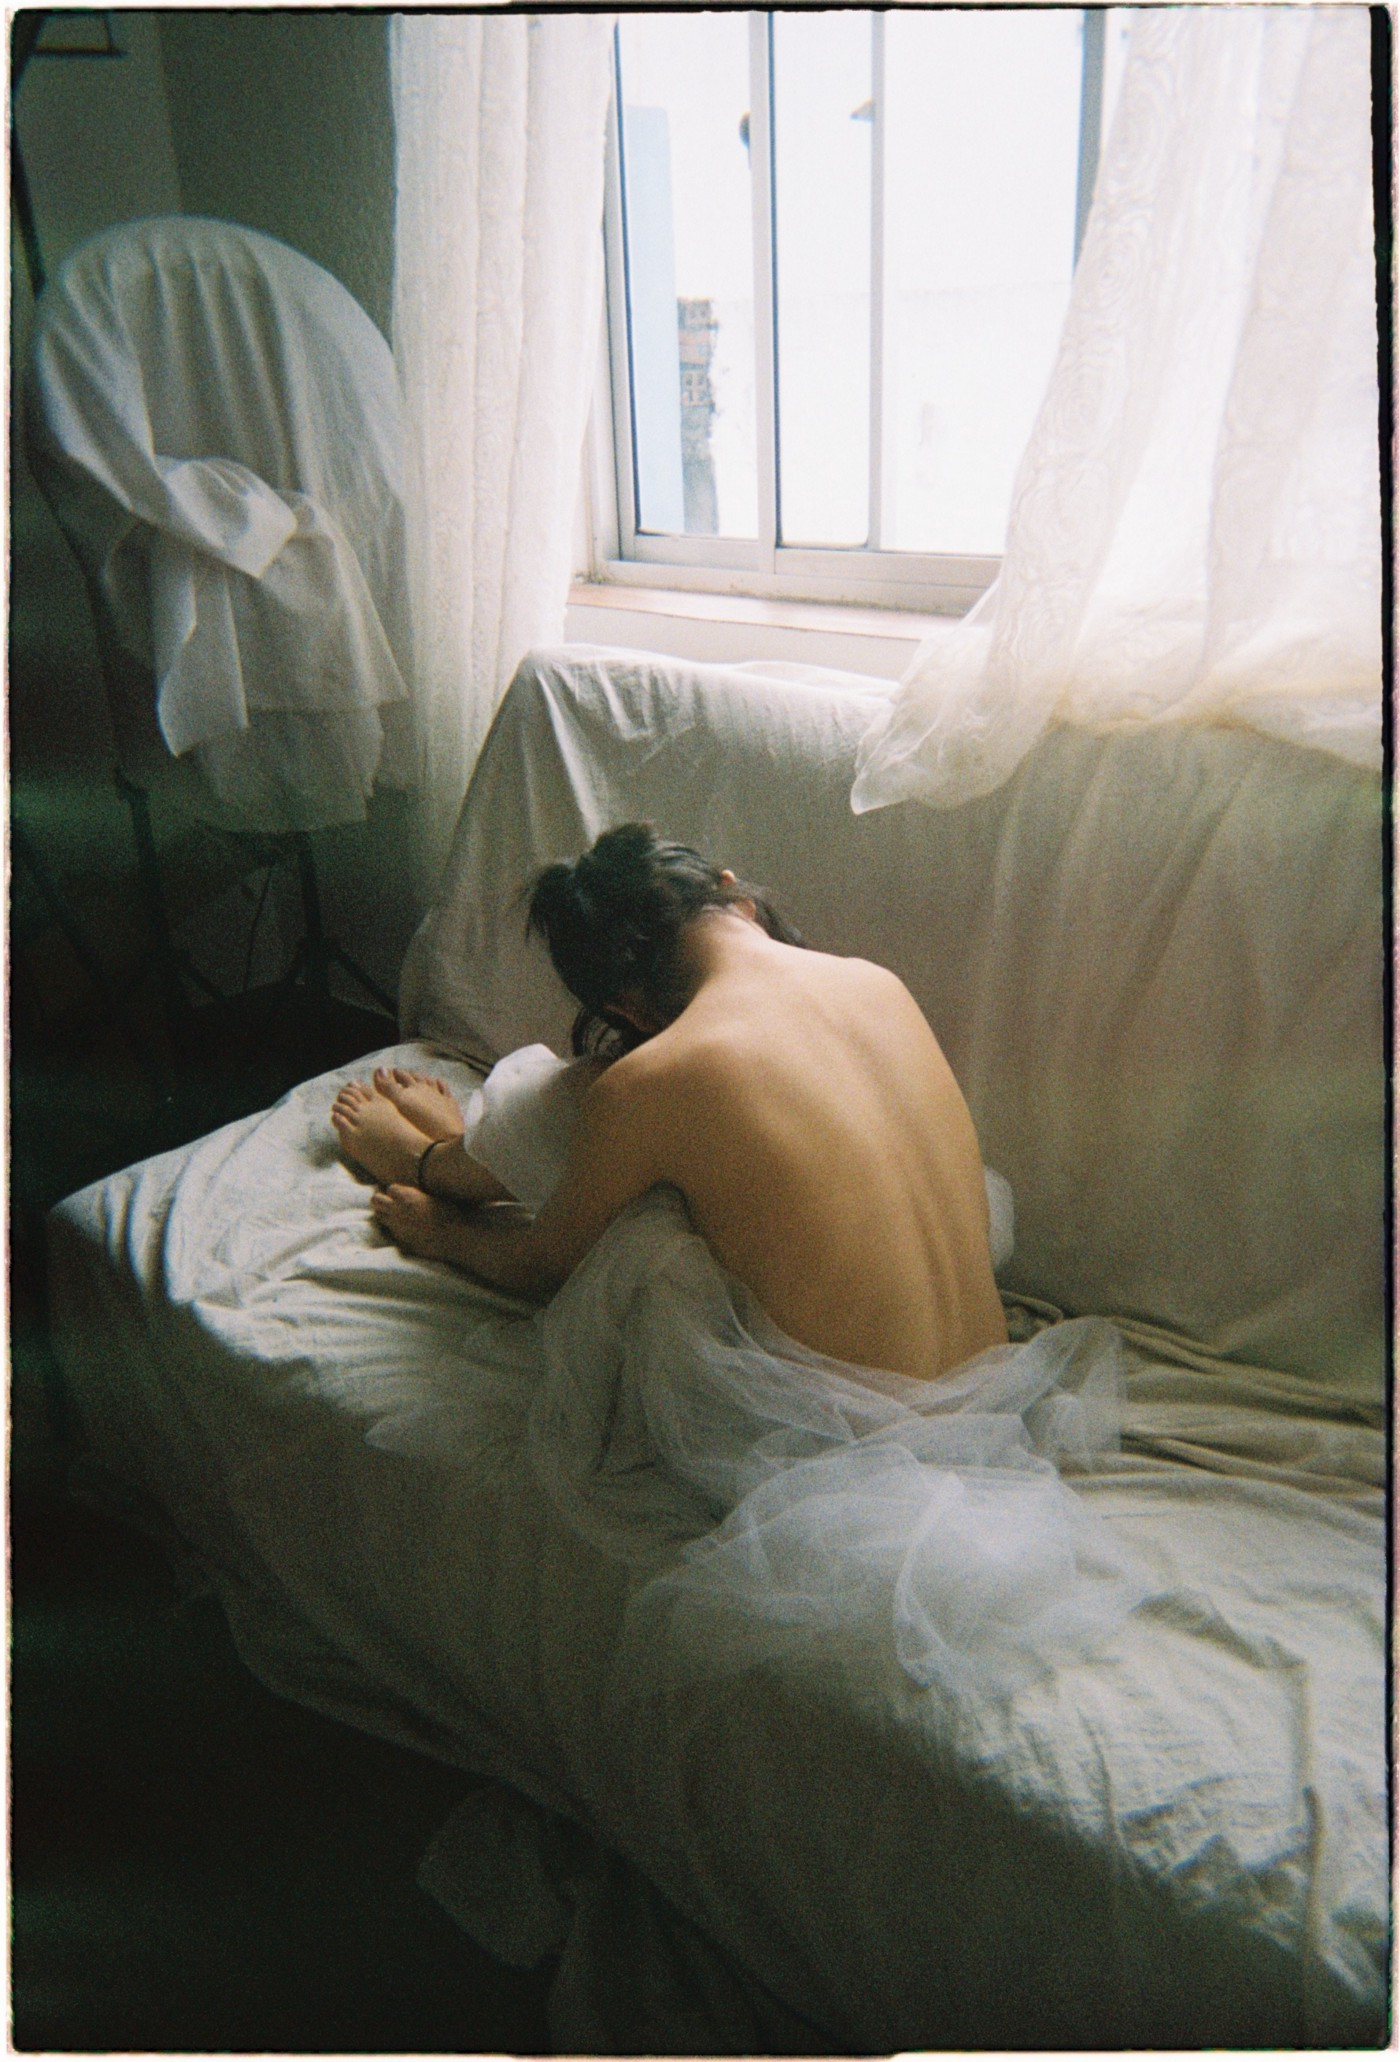 a shirtless woman with her back to us rests her head on her knees and sits on a couch bathed in soft window light